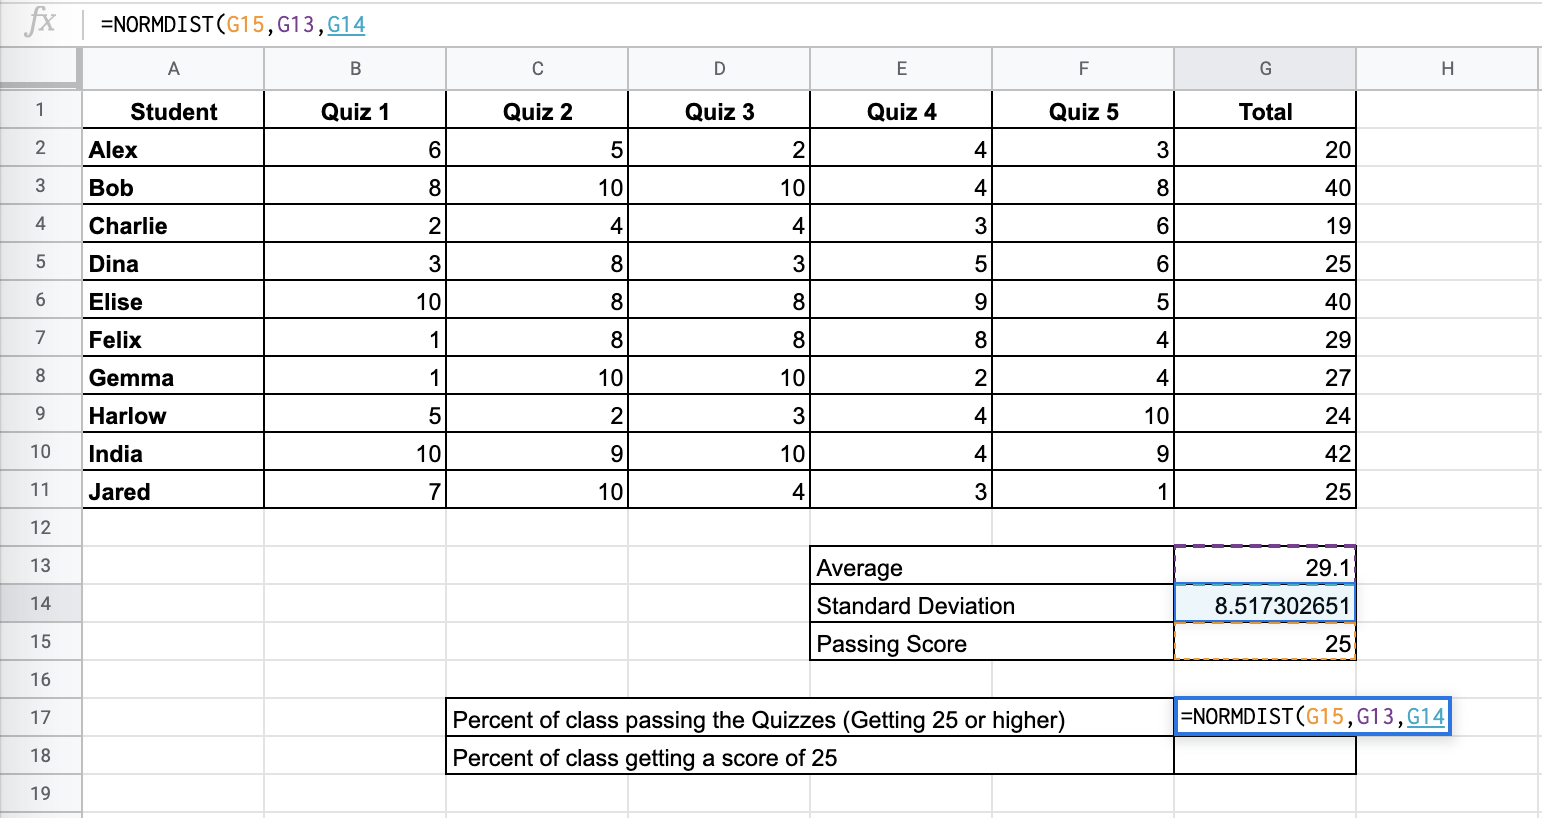 How to Use the NORMDIST Function in Google Sheets